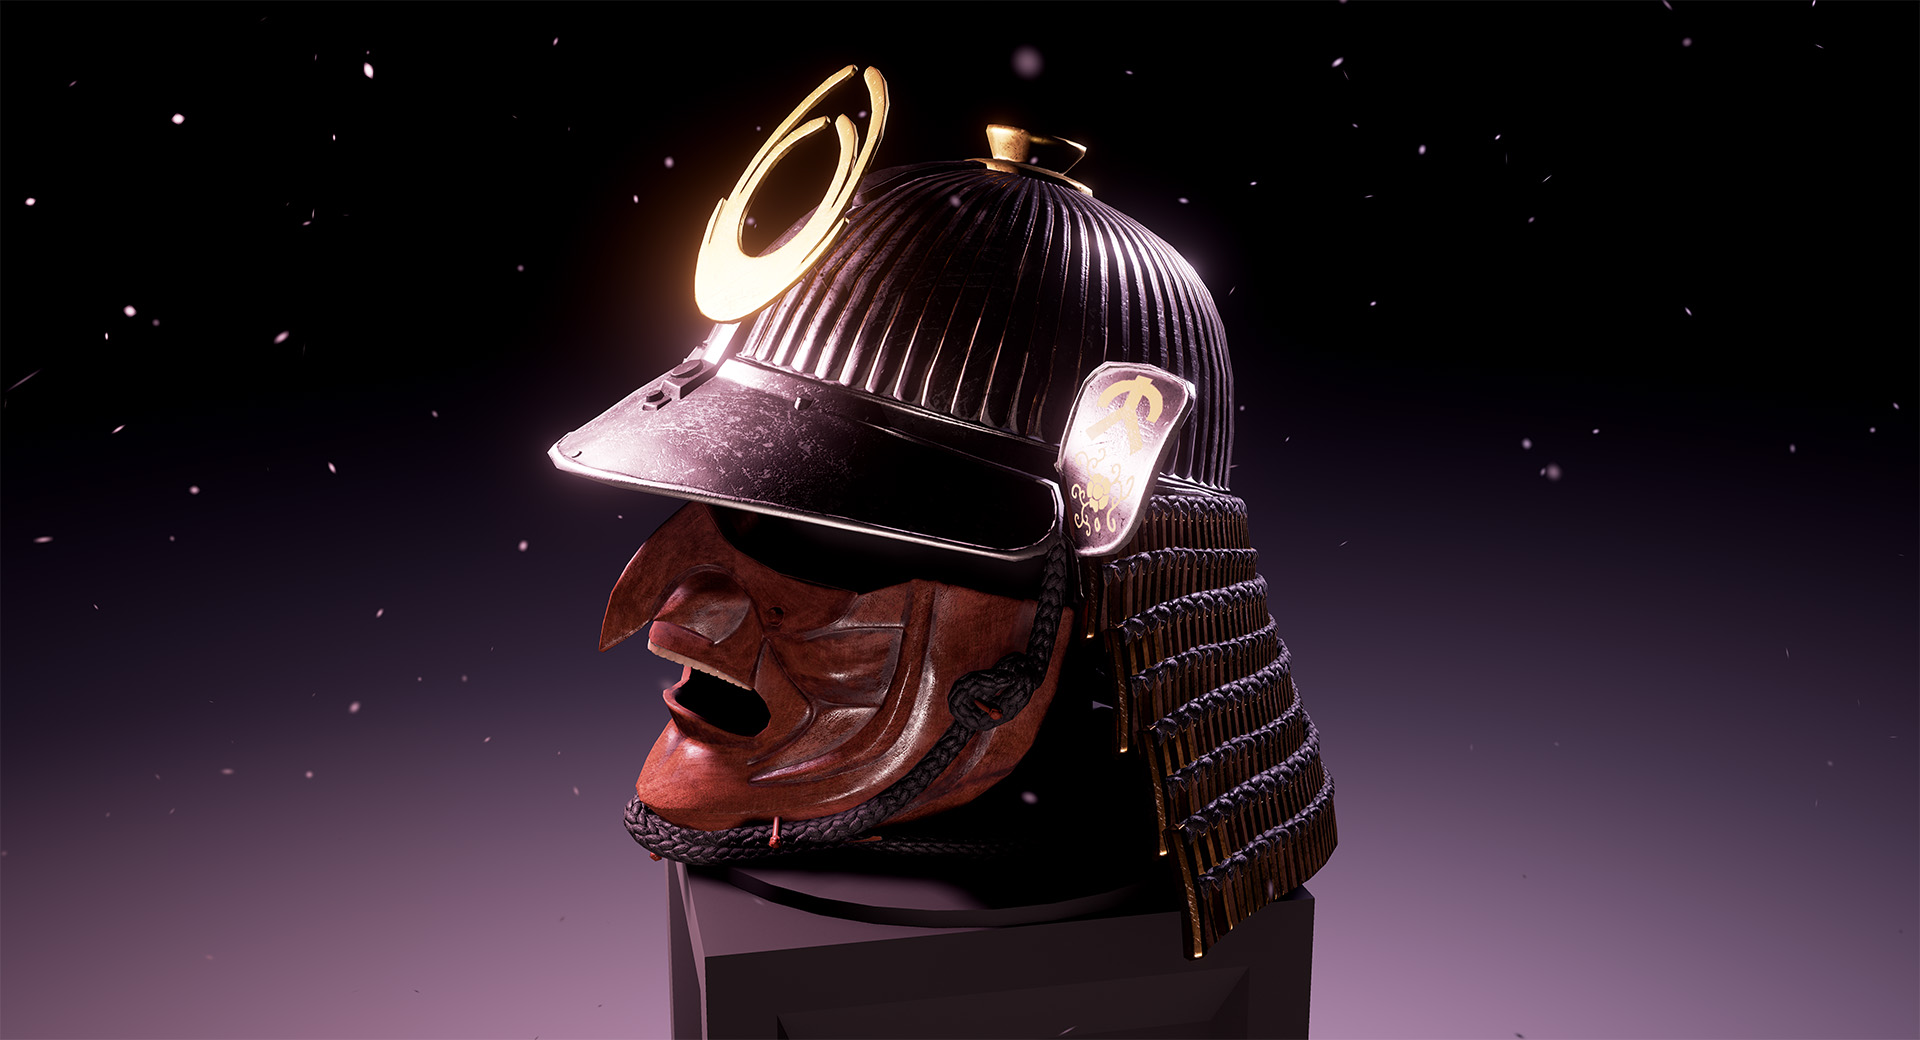 pbr kabuto samurai helmet unreal engine 4 render screenshot